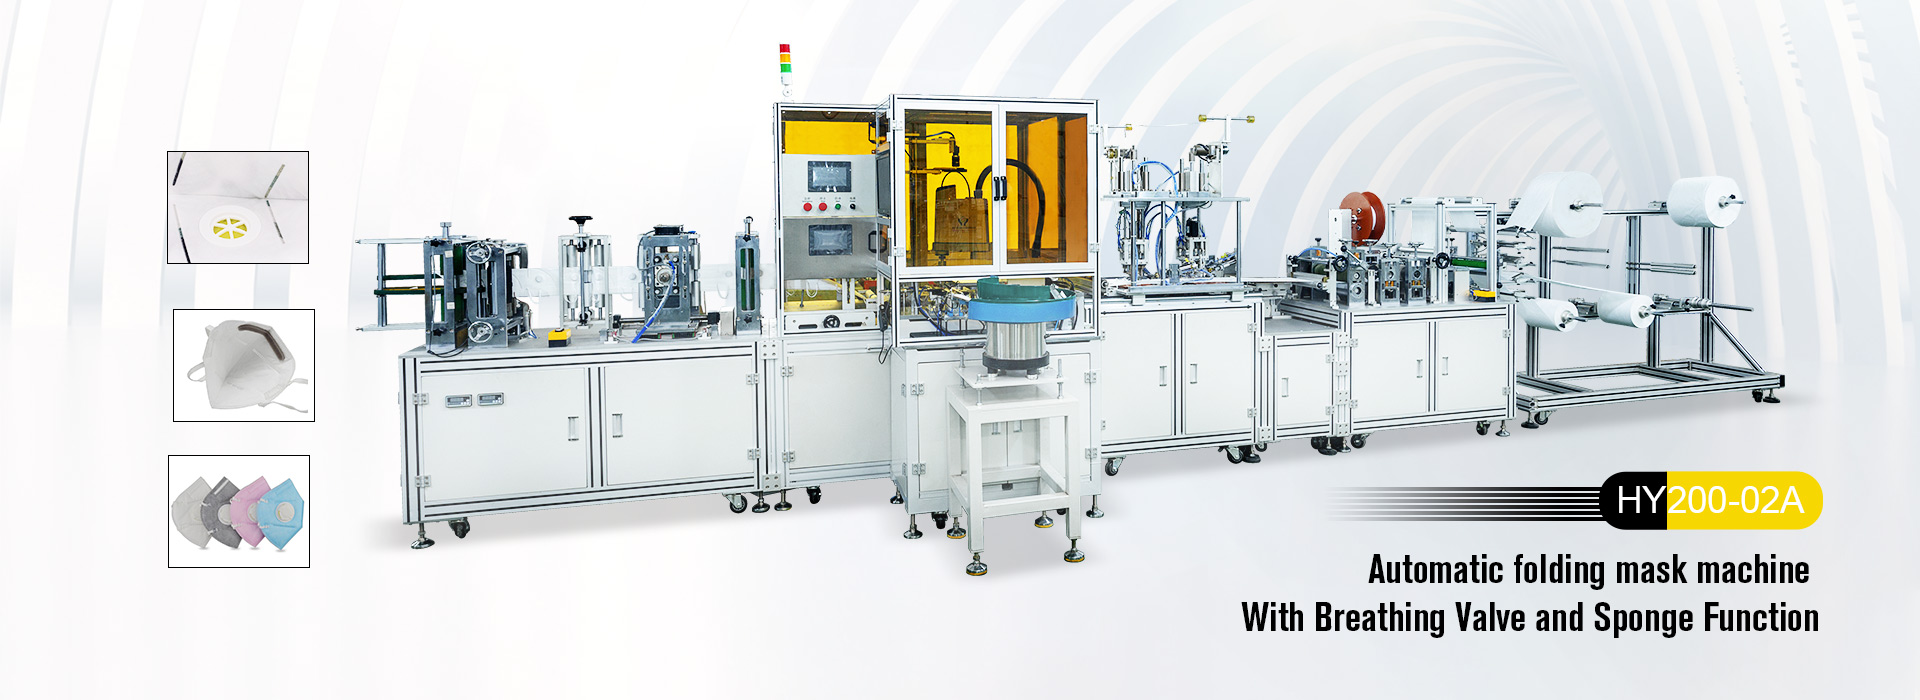 It is a fully automatic production line to make 2D folded respiratory mask , <br/>which from nose wire welding, ear loop welding to finished mask. It can be with extra function of breathing valve and sponge.